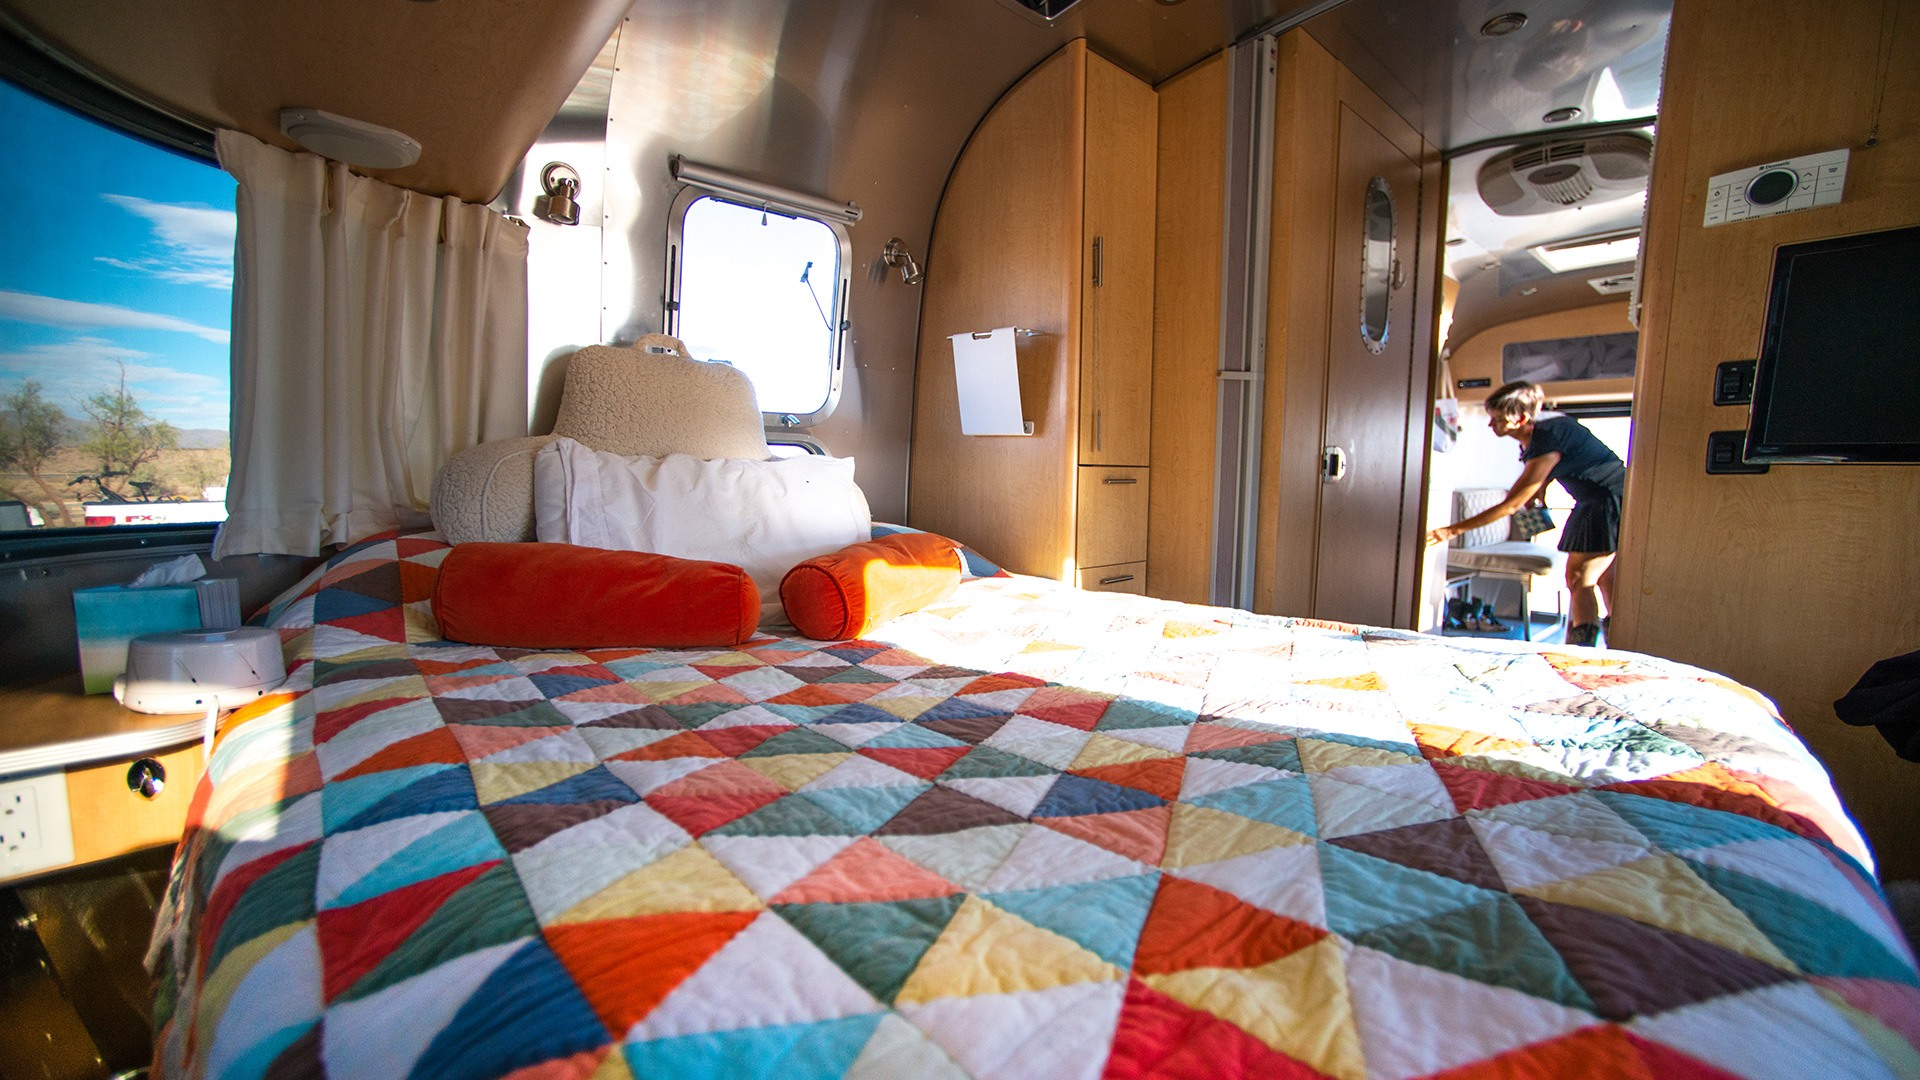 Airstream Travel Trailer Interior Bed Living the Airstream Dream